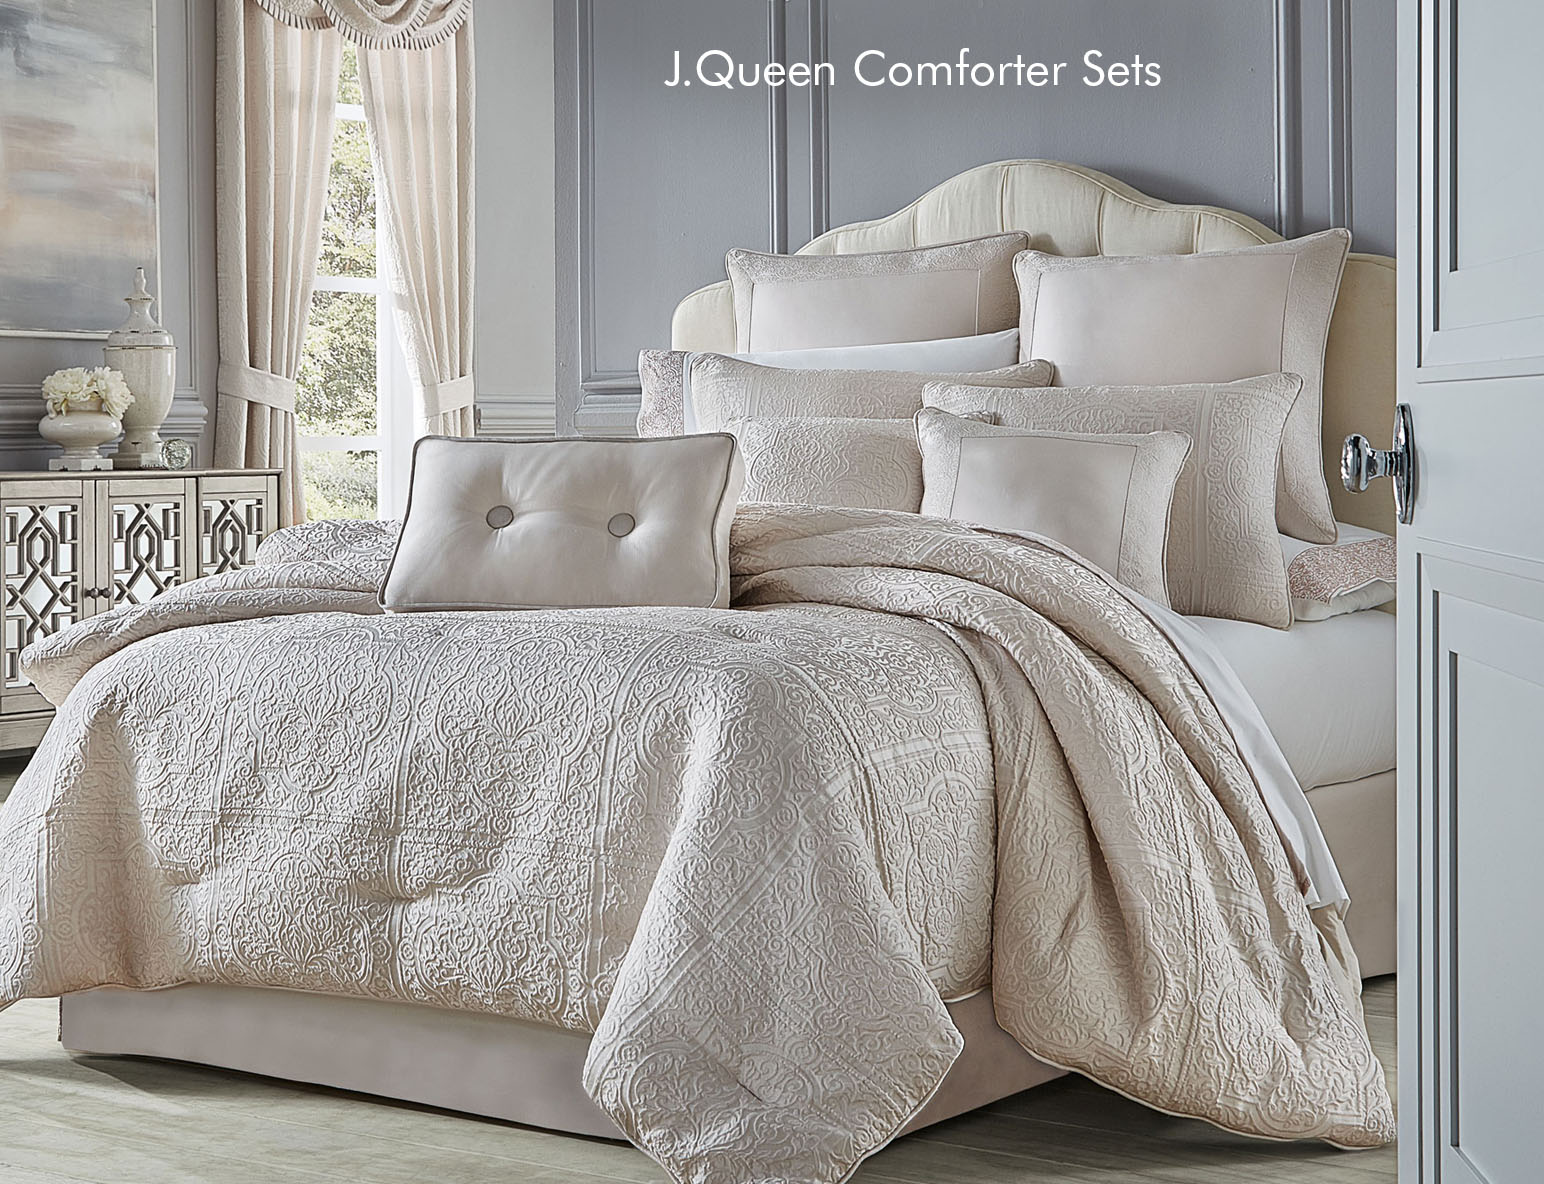 Shop J Queen Bedding and save